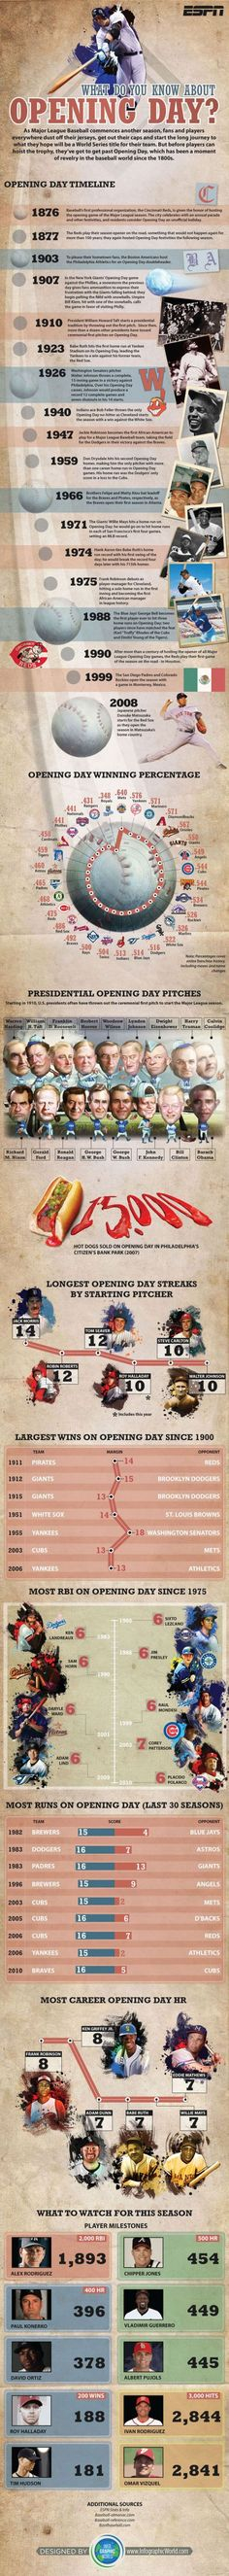 What do you know about Opening Day? INFOGRAPHIC